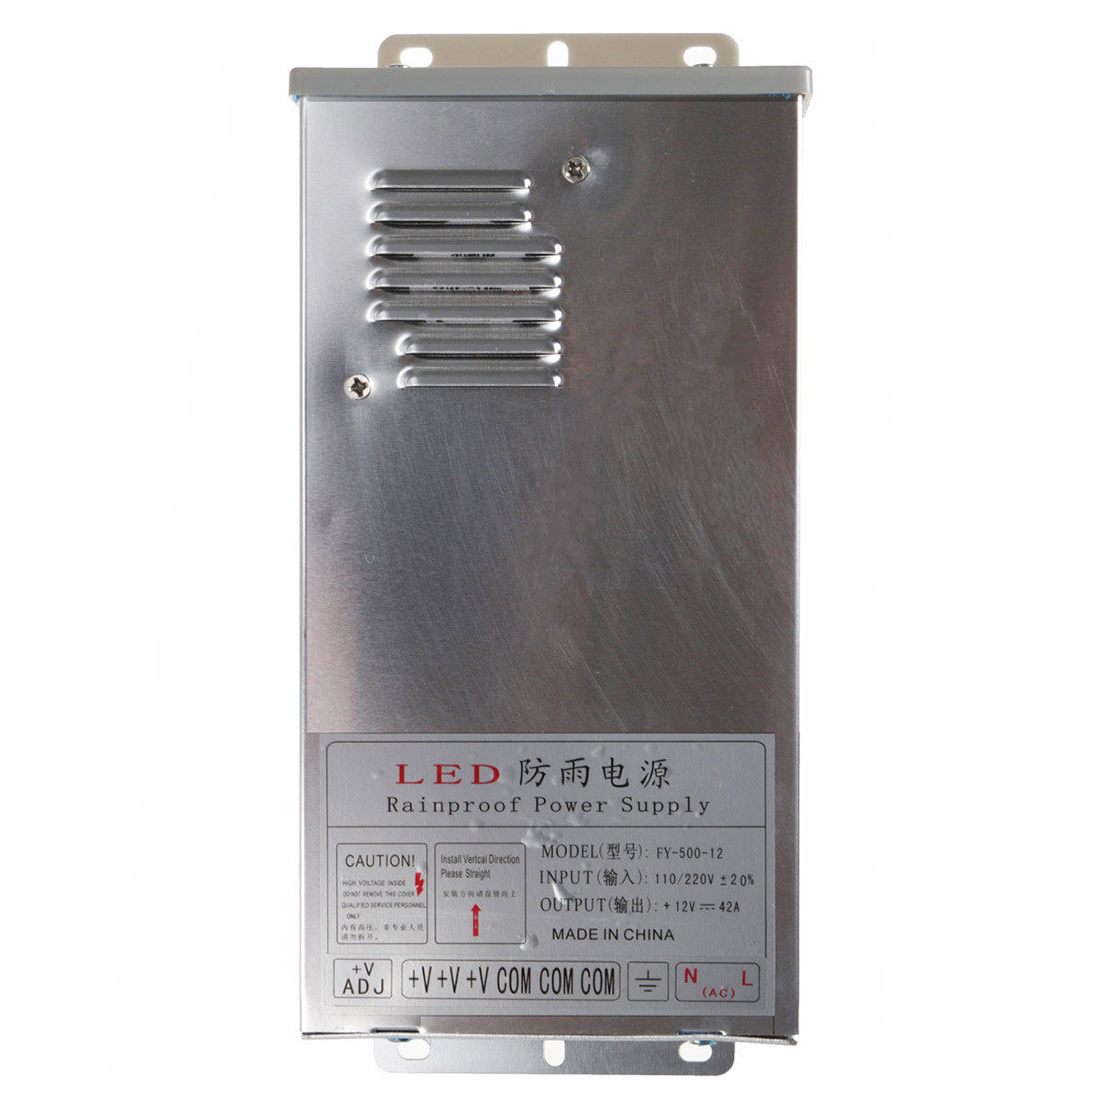 Top Deals In/Outdoor Switching Power Supply Silver, FY 500 12 12V 42A 500W